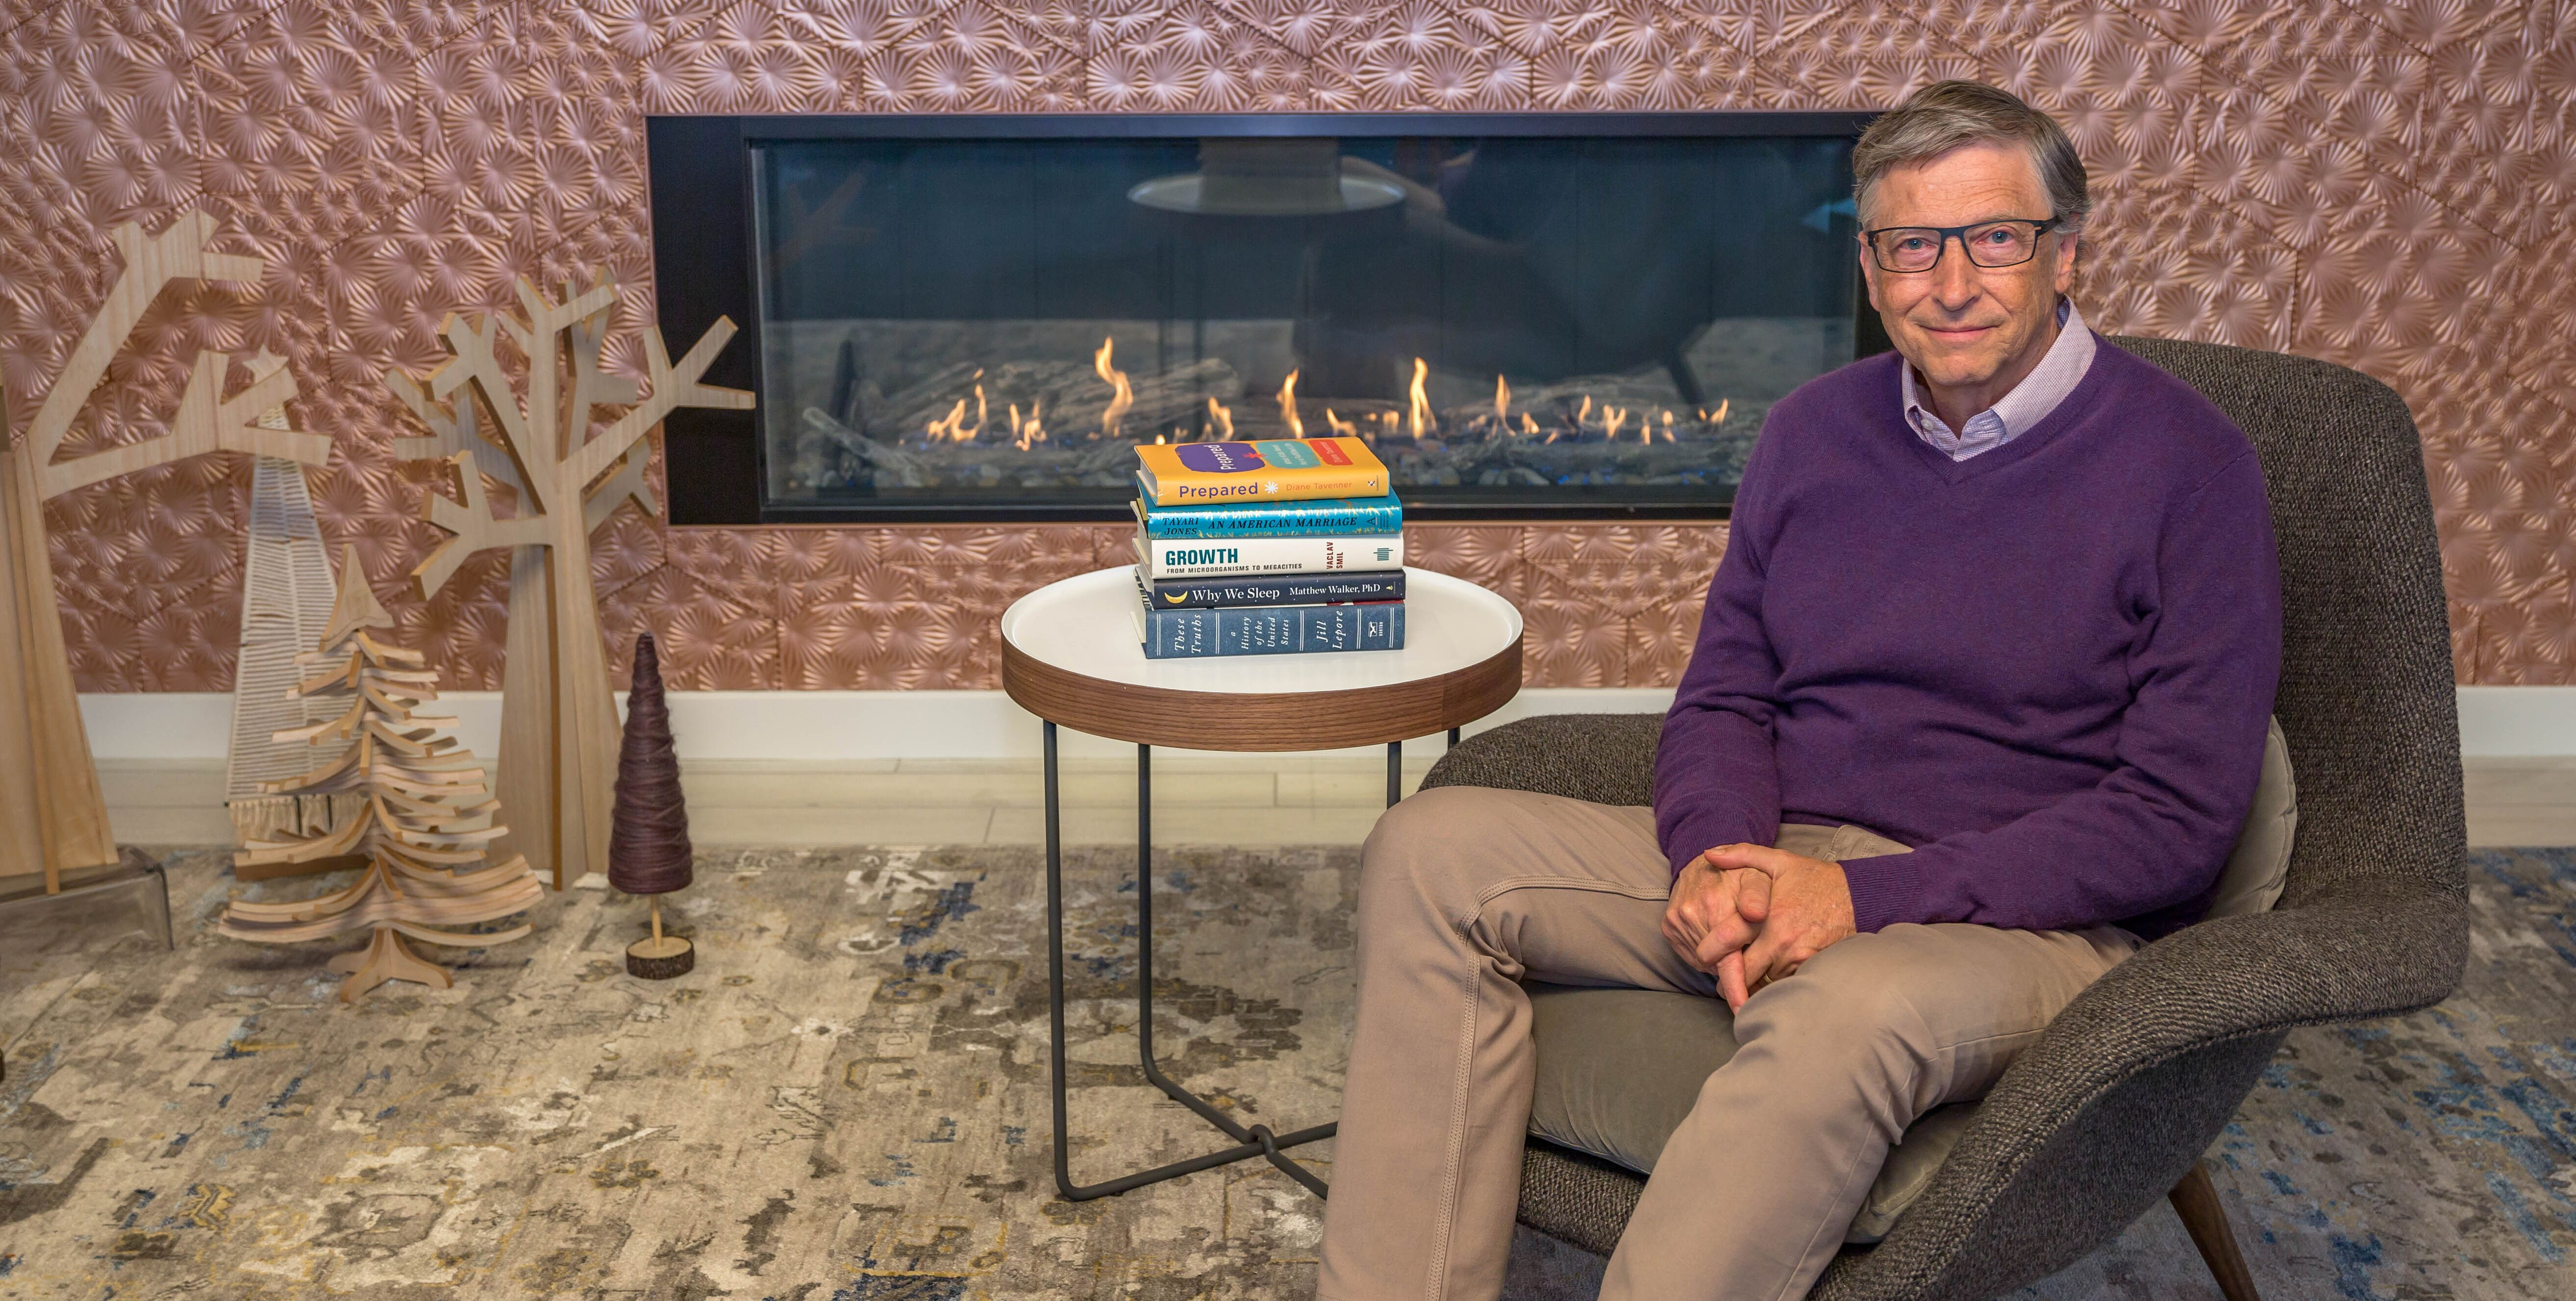 Bill Gates Reading List 2020.Bill Gates Shares Favorite Books He Read In 2019 Time